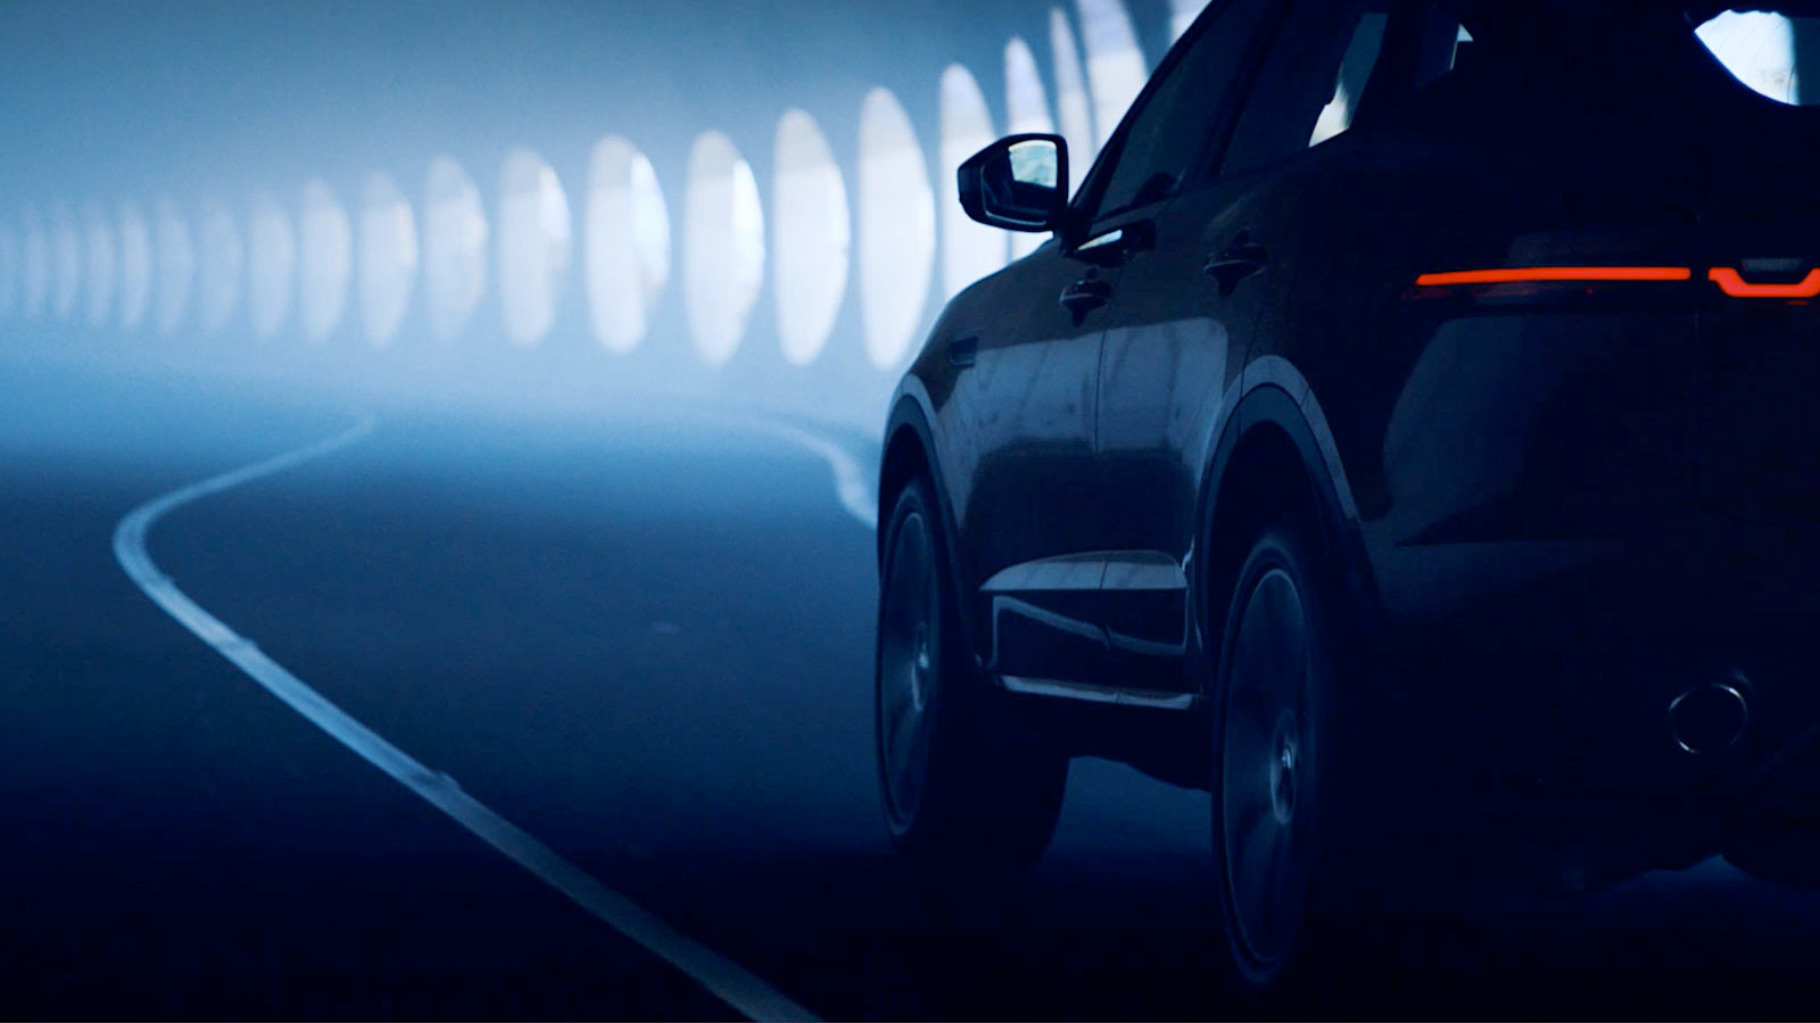 Jaguar E-Pace driving through a dark tunnel.